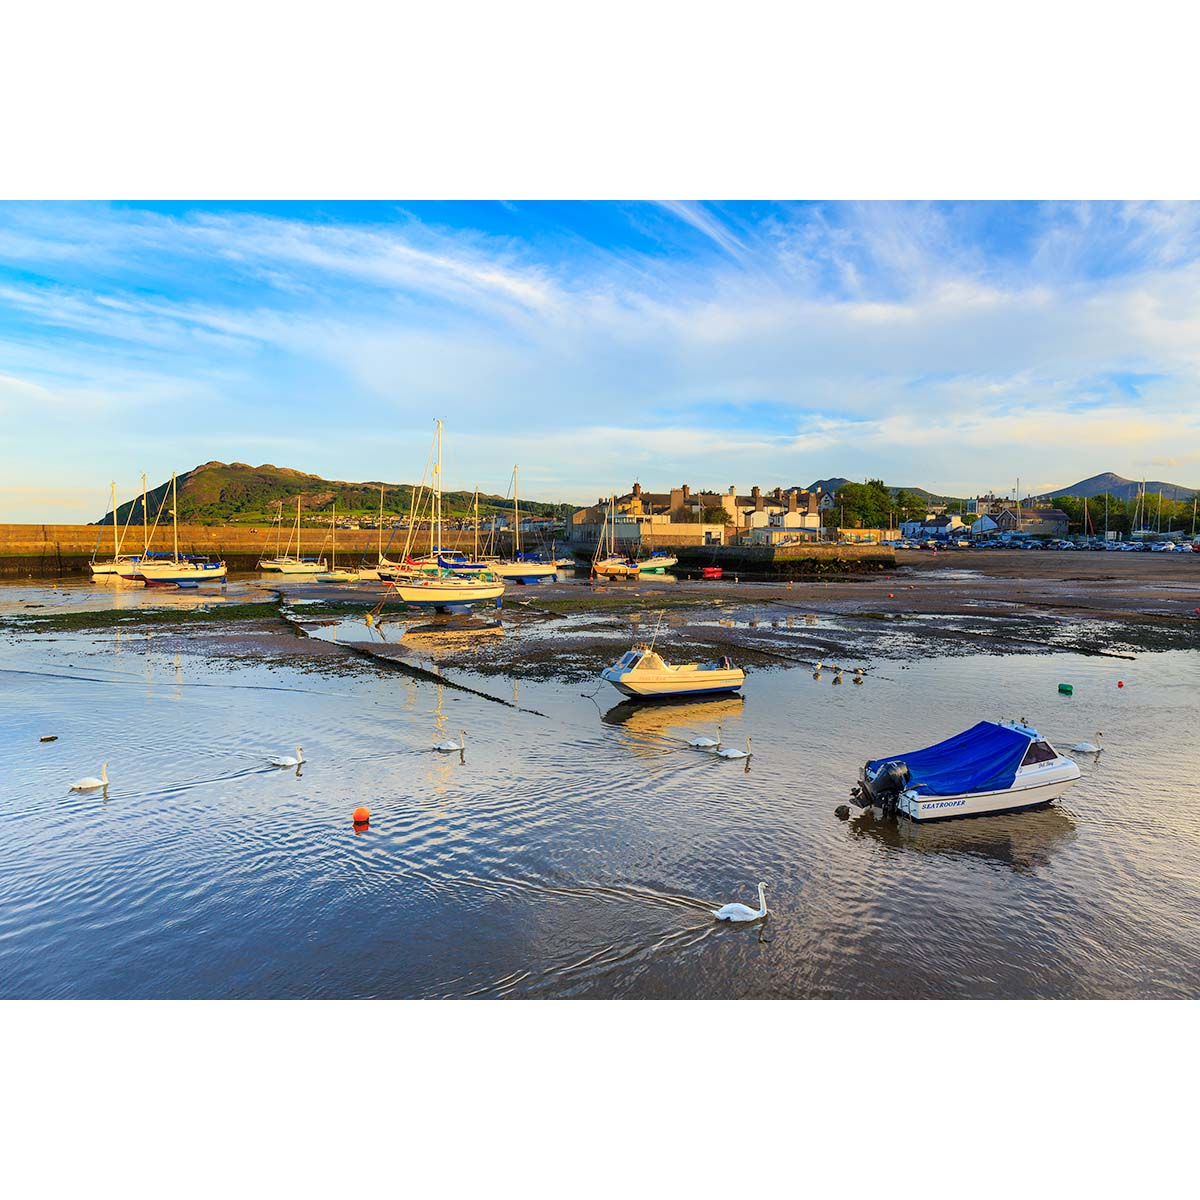 Bray Harbour and the river Dargle